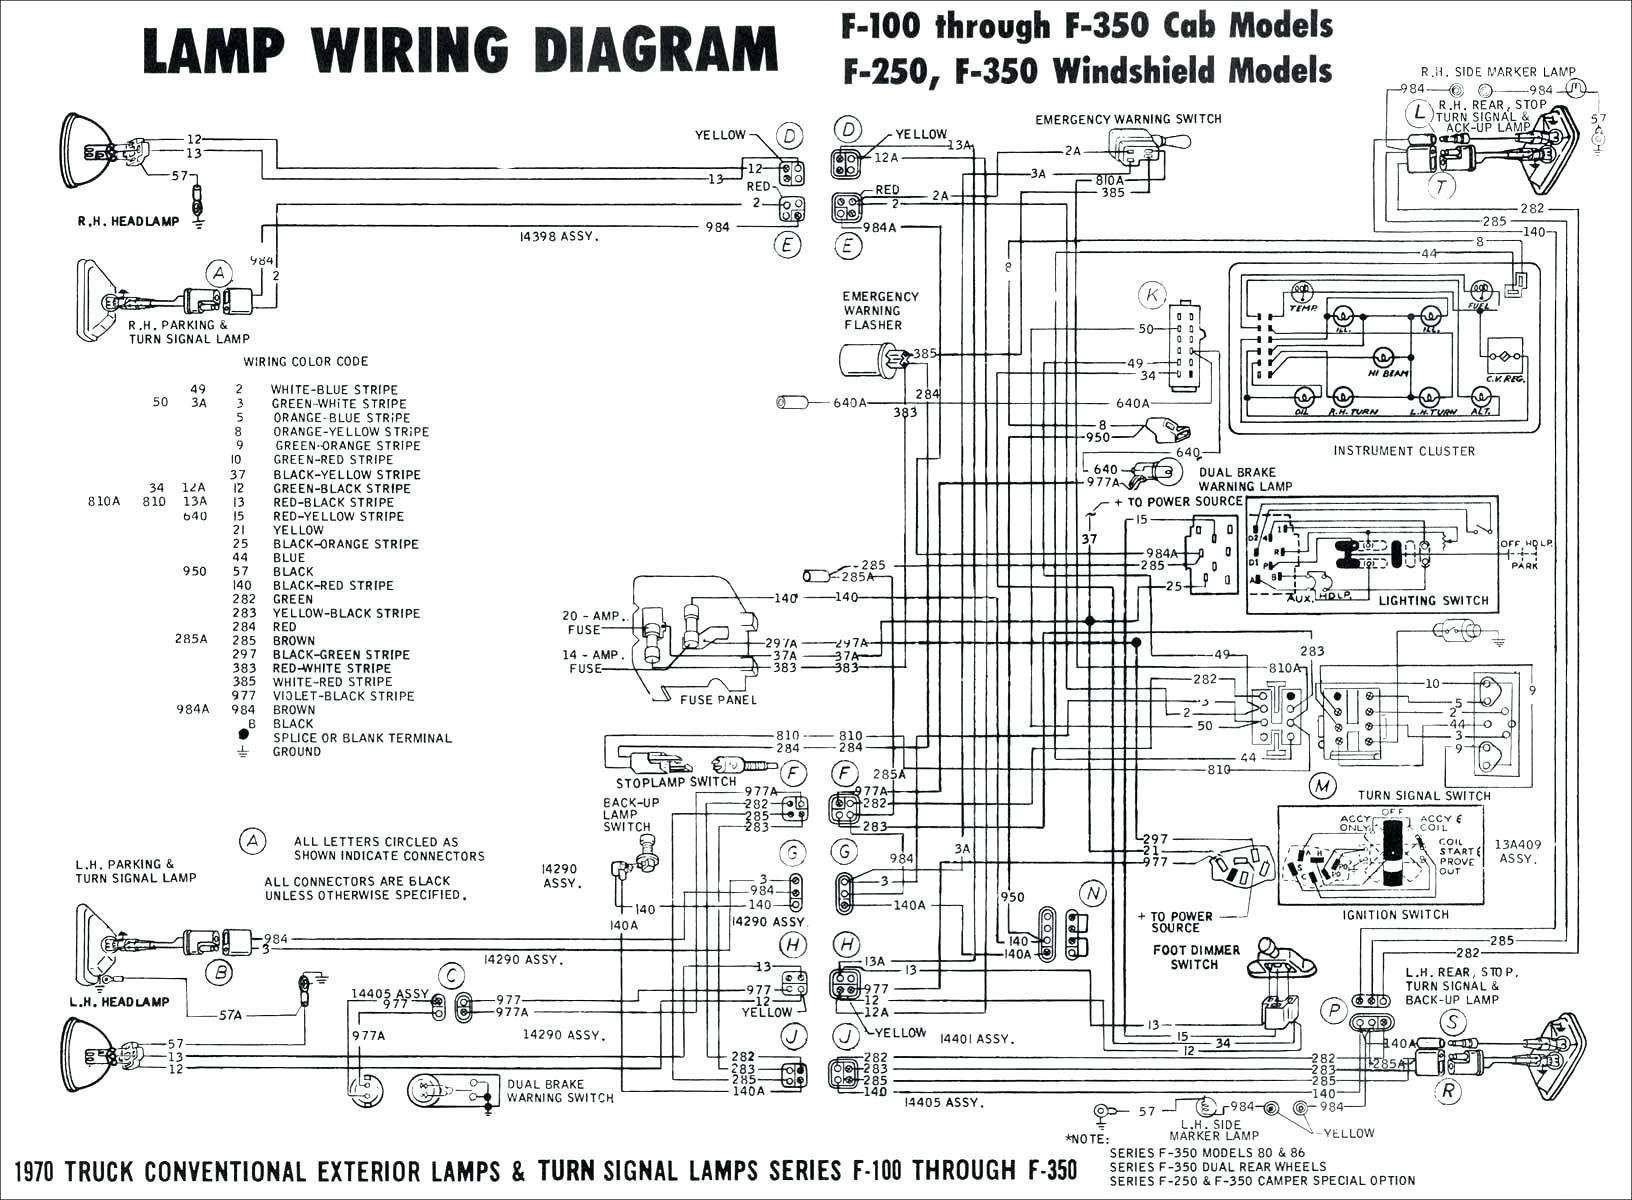 2001 Dodge Ram 1500 Brake Light Wiring Nd 5979] 1998 Dodge Ram 3500 Front End Diagram Printable Of 2001 Dodge Ram 1500 Brake Light Wiring Dodge 2500 Trailer Wiring Diagram Wiring Diagram Data